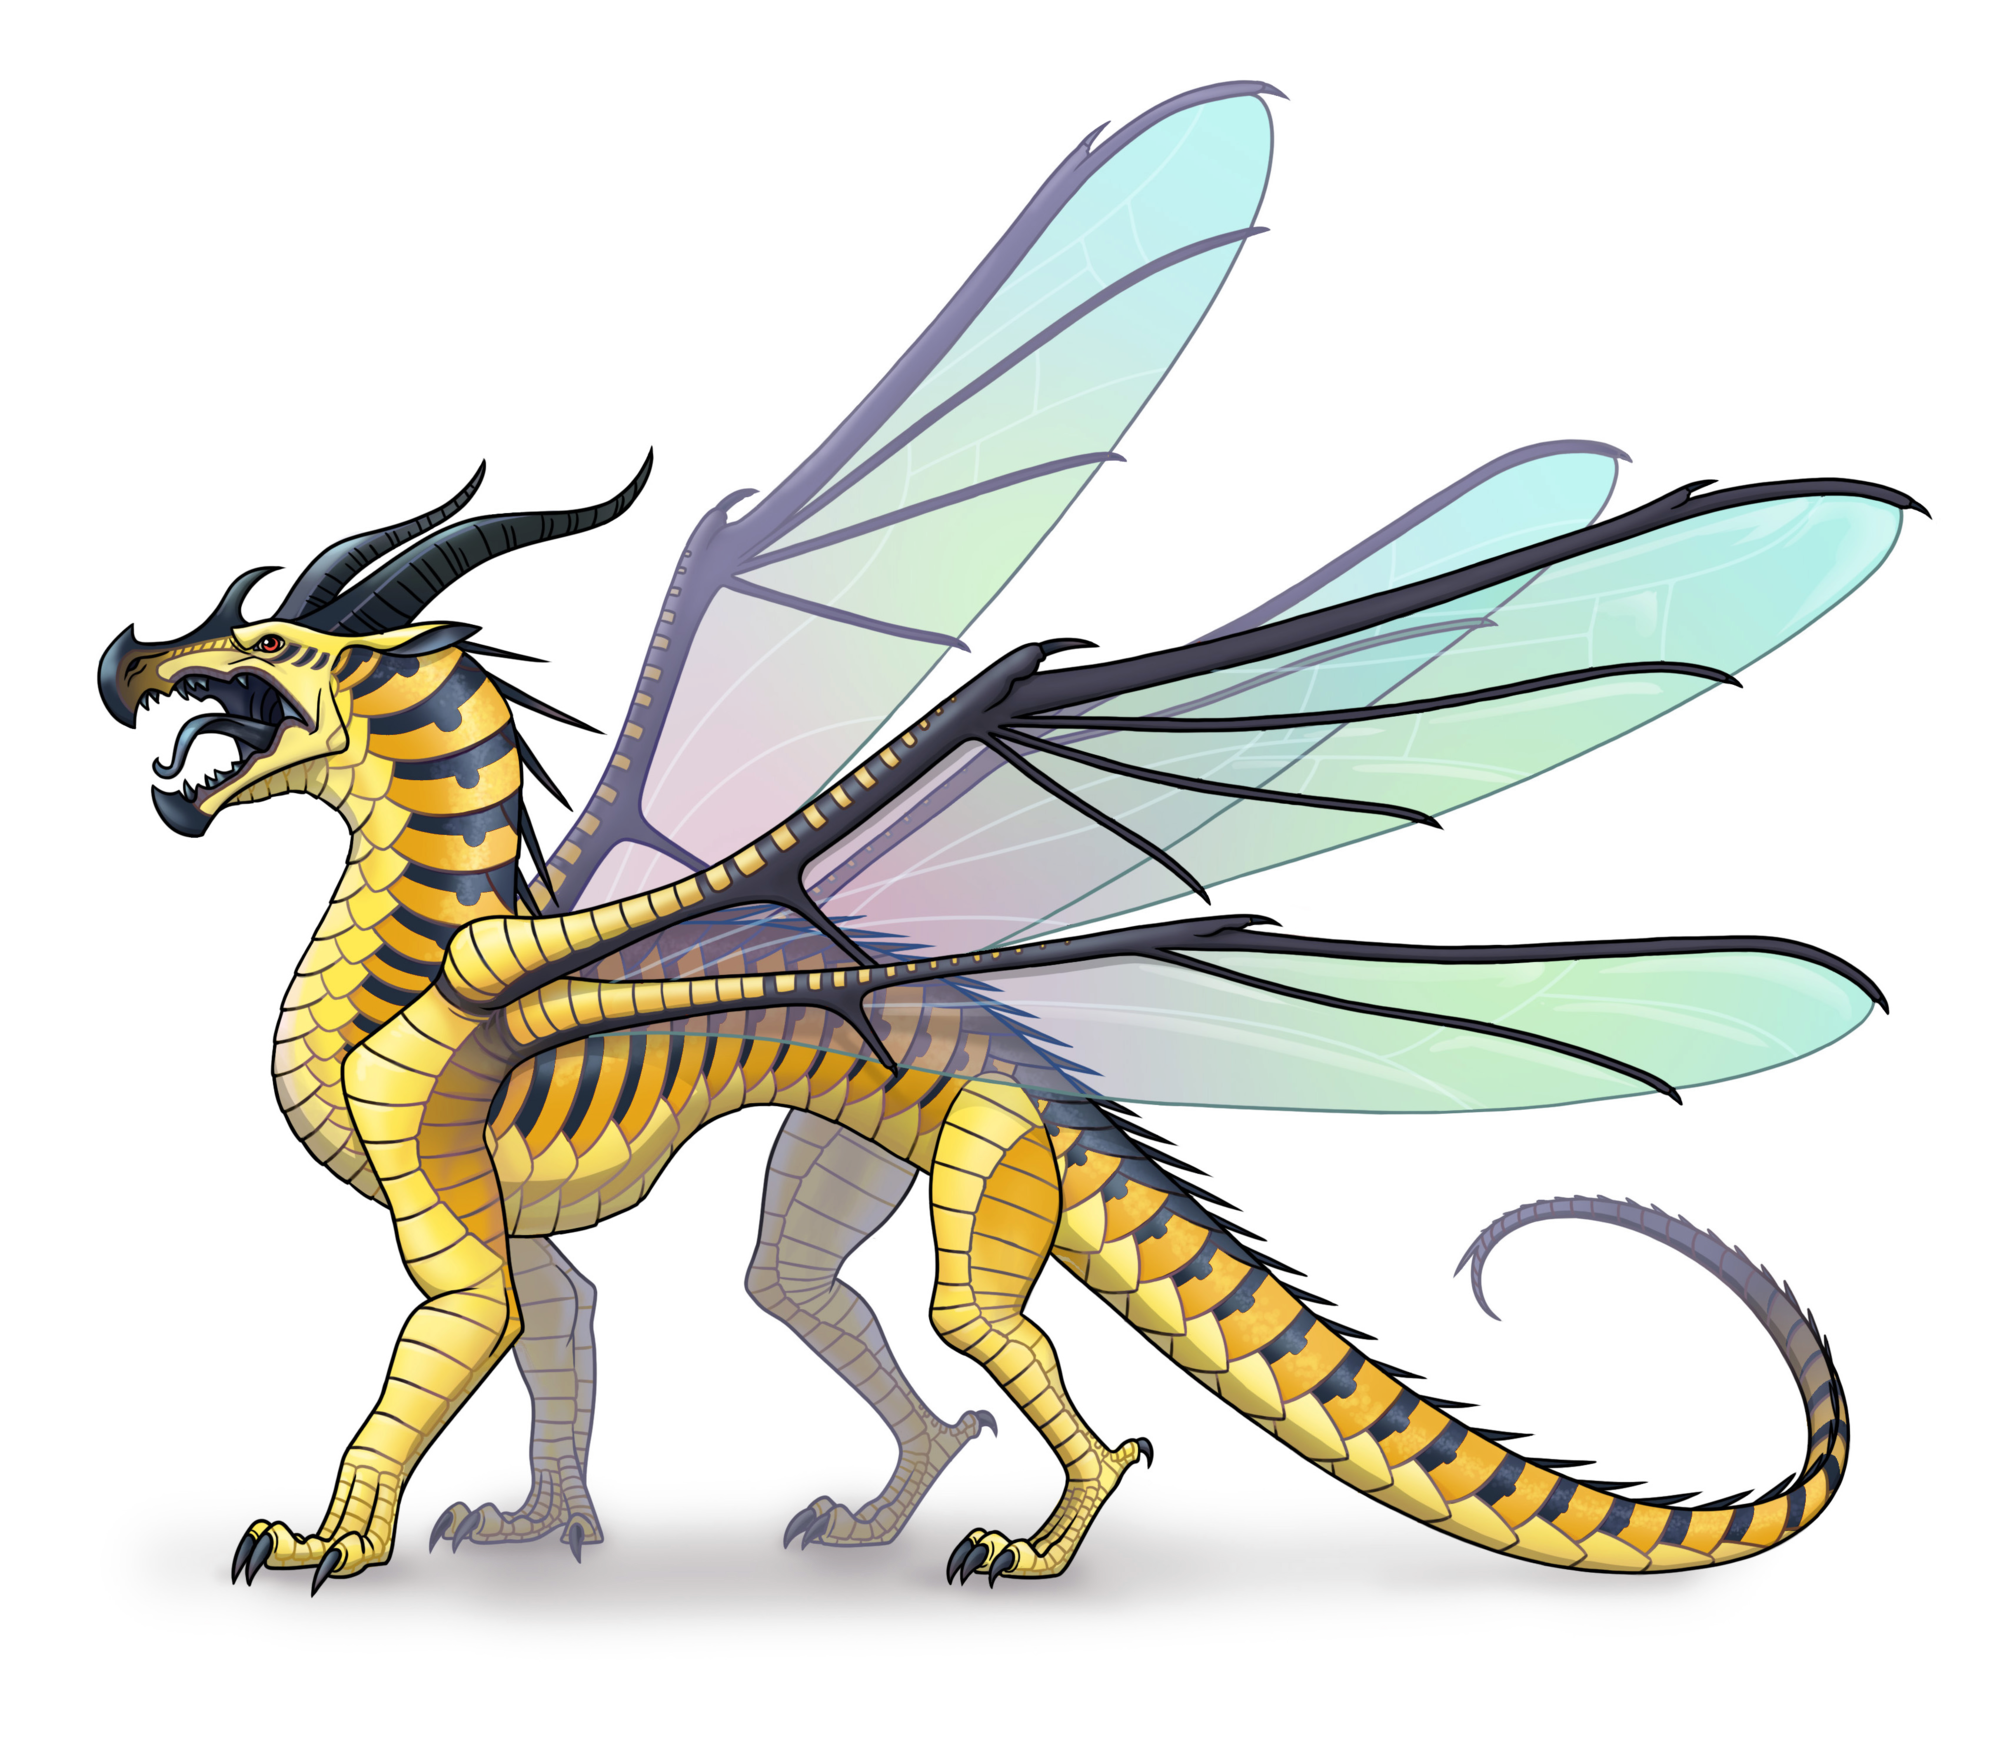 Dragons | Wings of Fire Wiki | FANDOM powered by Wikia